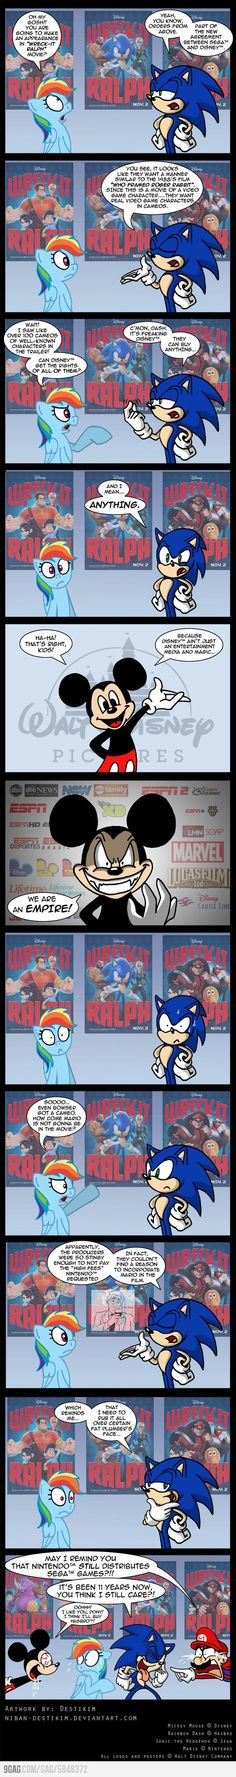 Disney is an Empire!